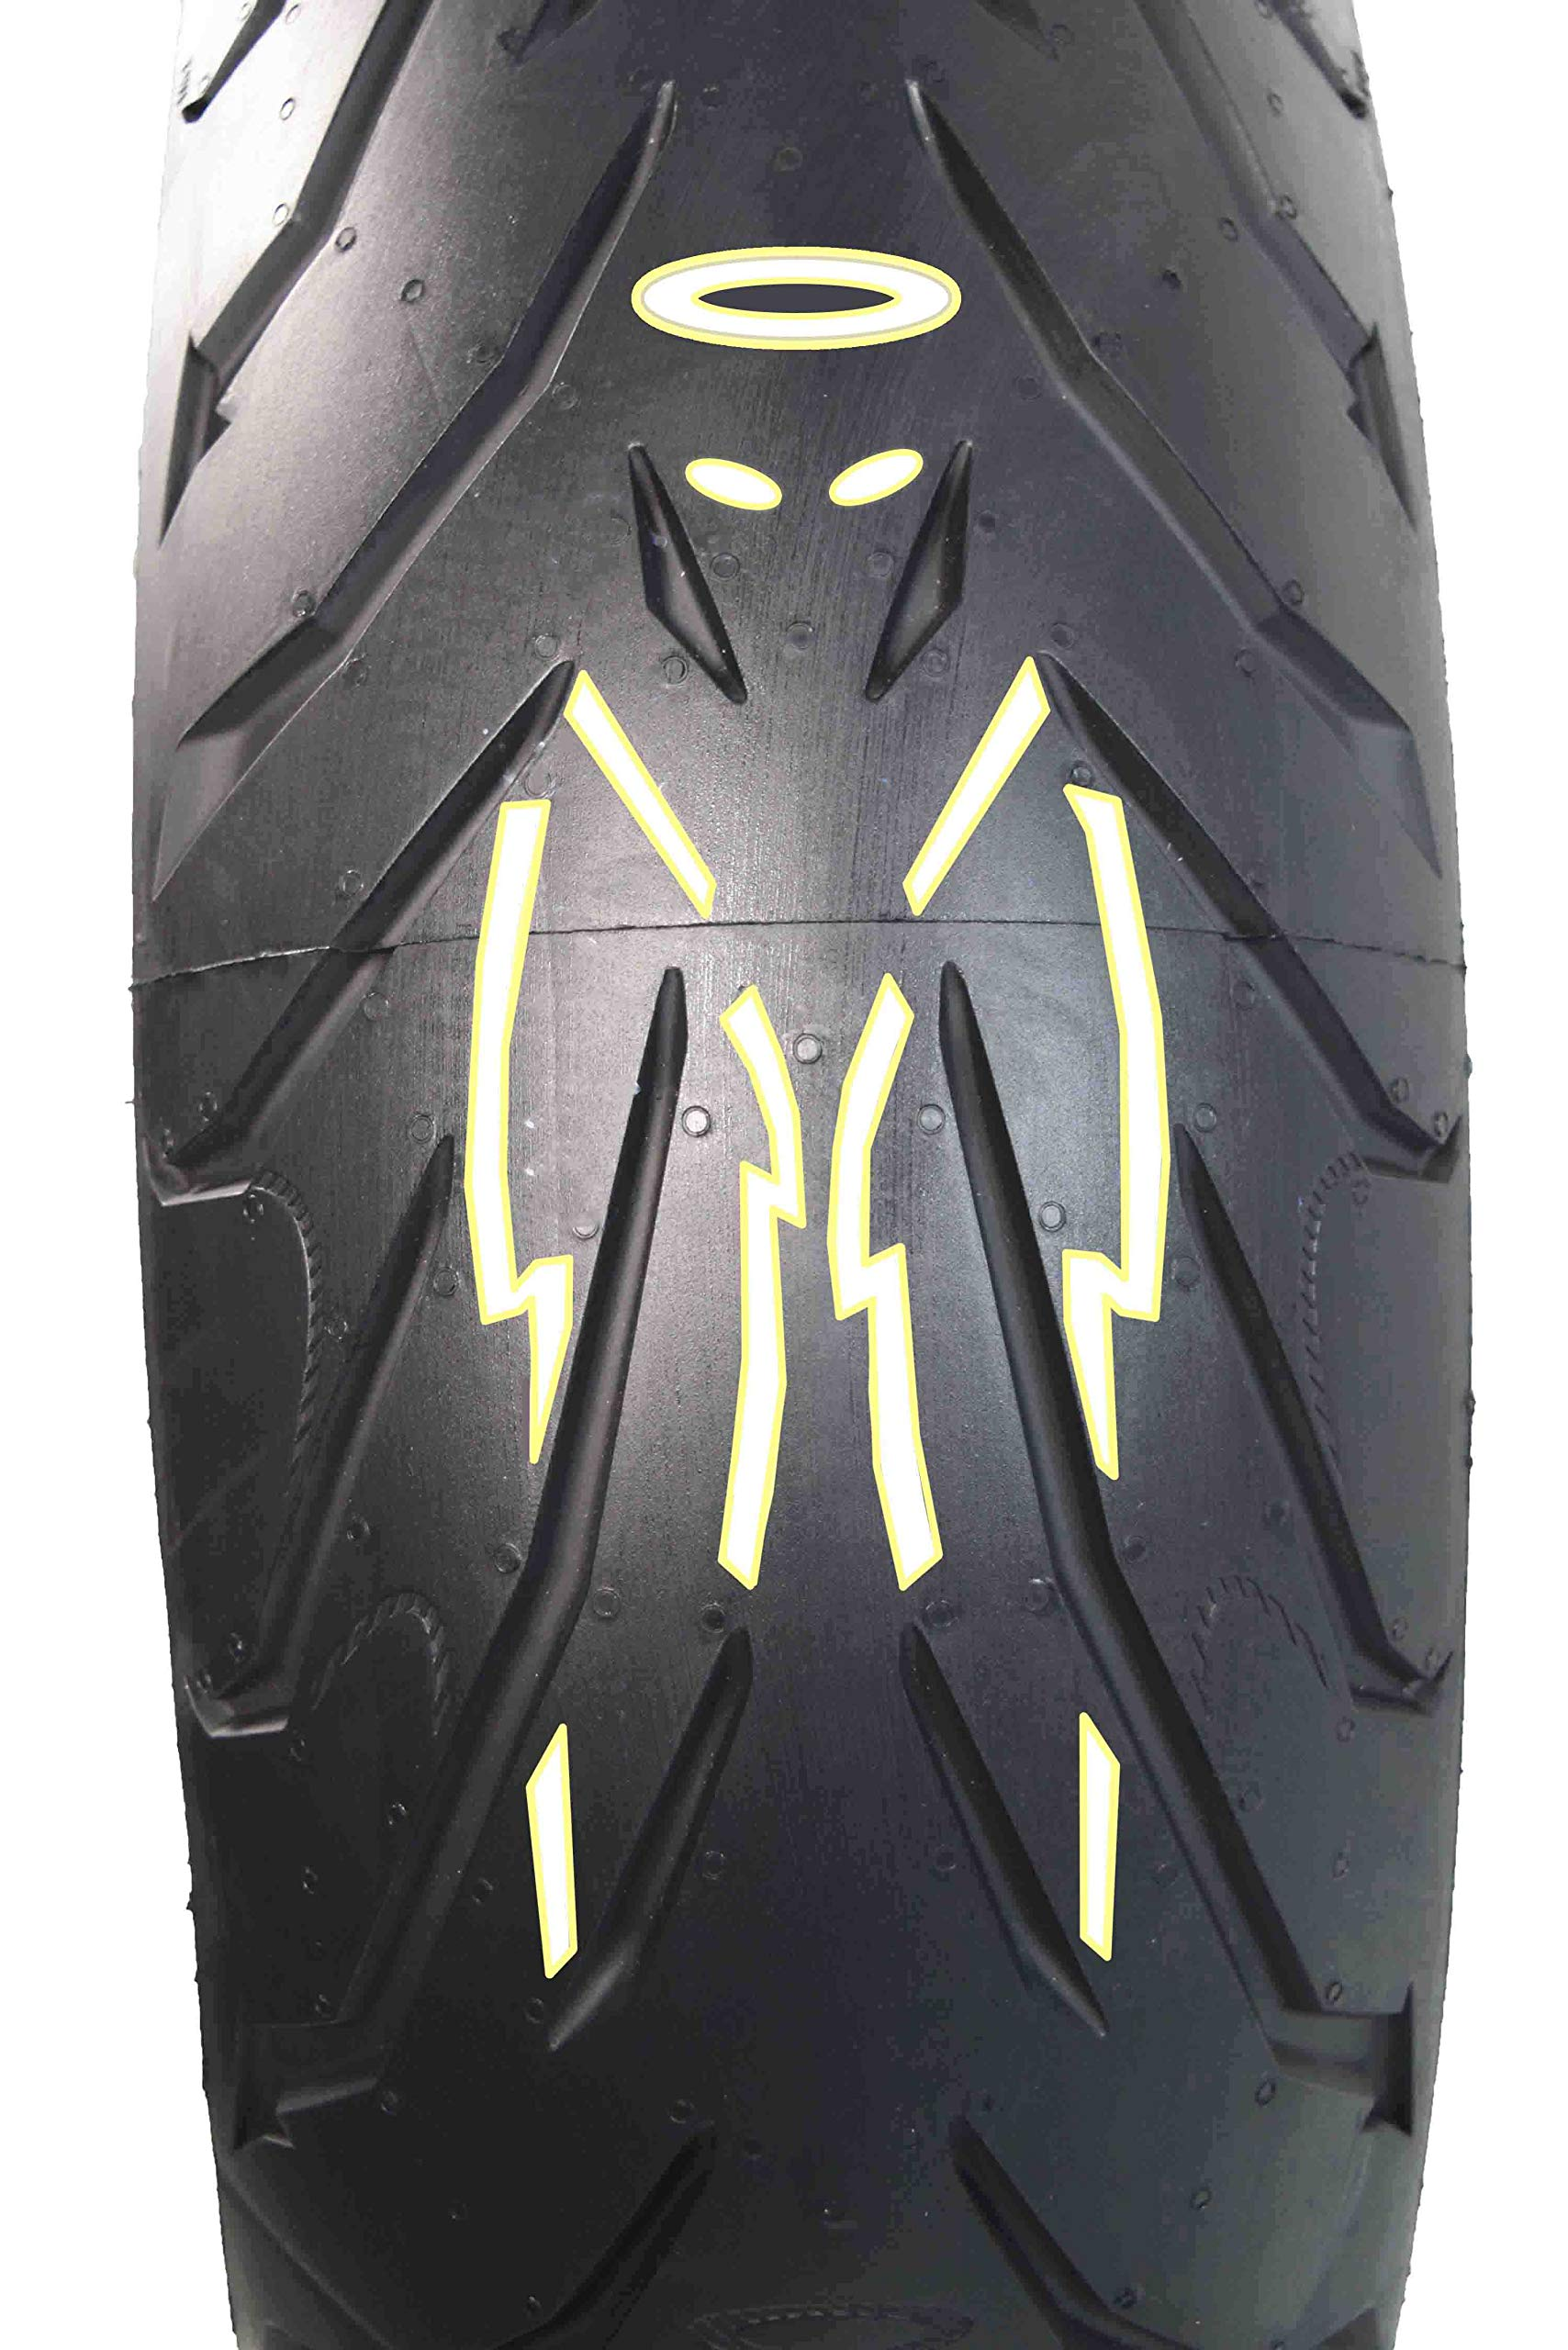 Pirelli Angel ST Front Street Sport Touring Motorcycle Tire (1x Front 120/60ZR17)